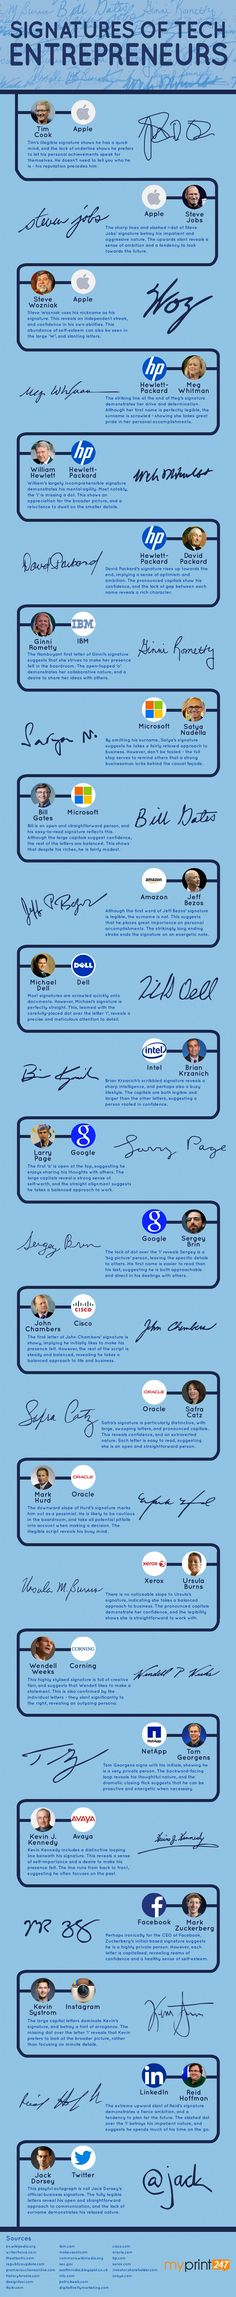 Handwriting Analysis of Signatures of Famous People (Infographic)